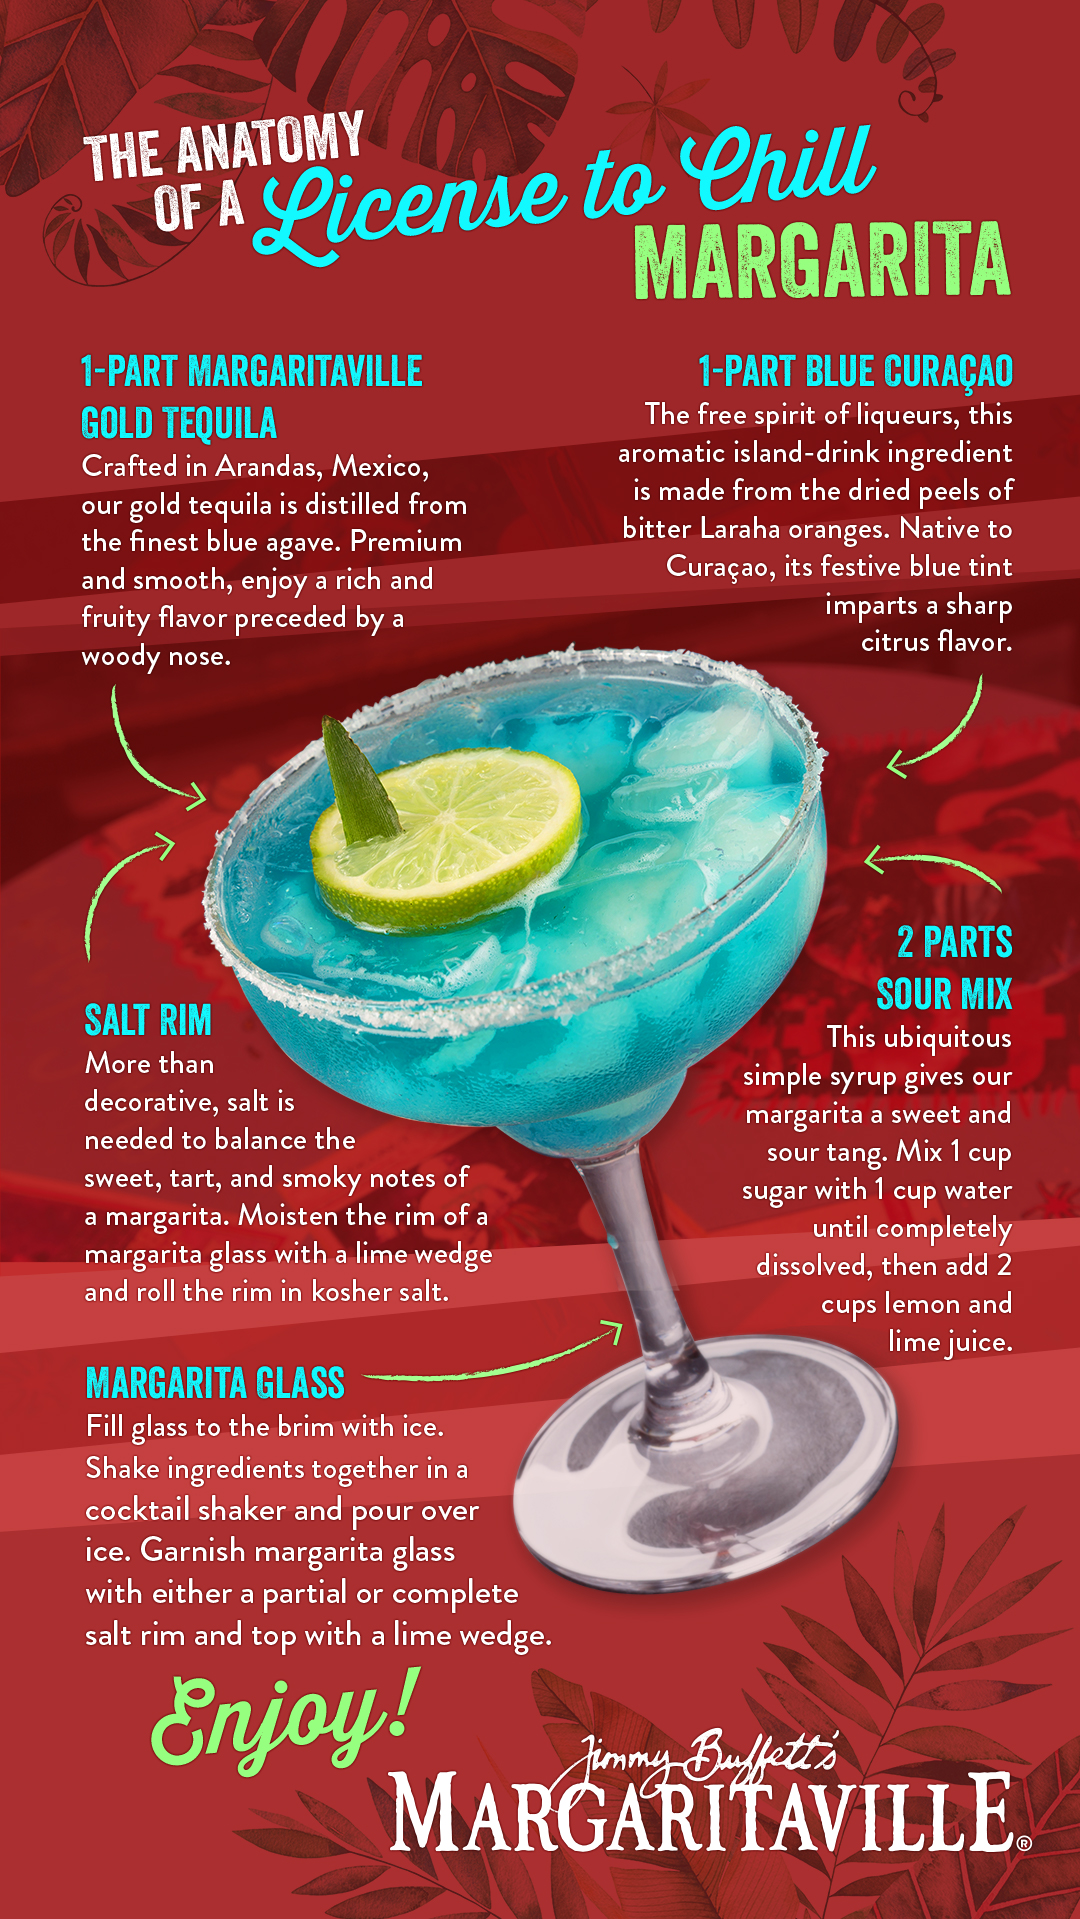 An infographic showing what is in a margarita and how to make a margarita, Margaritaville-style